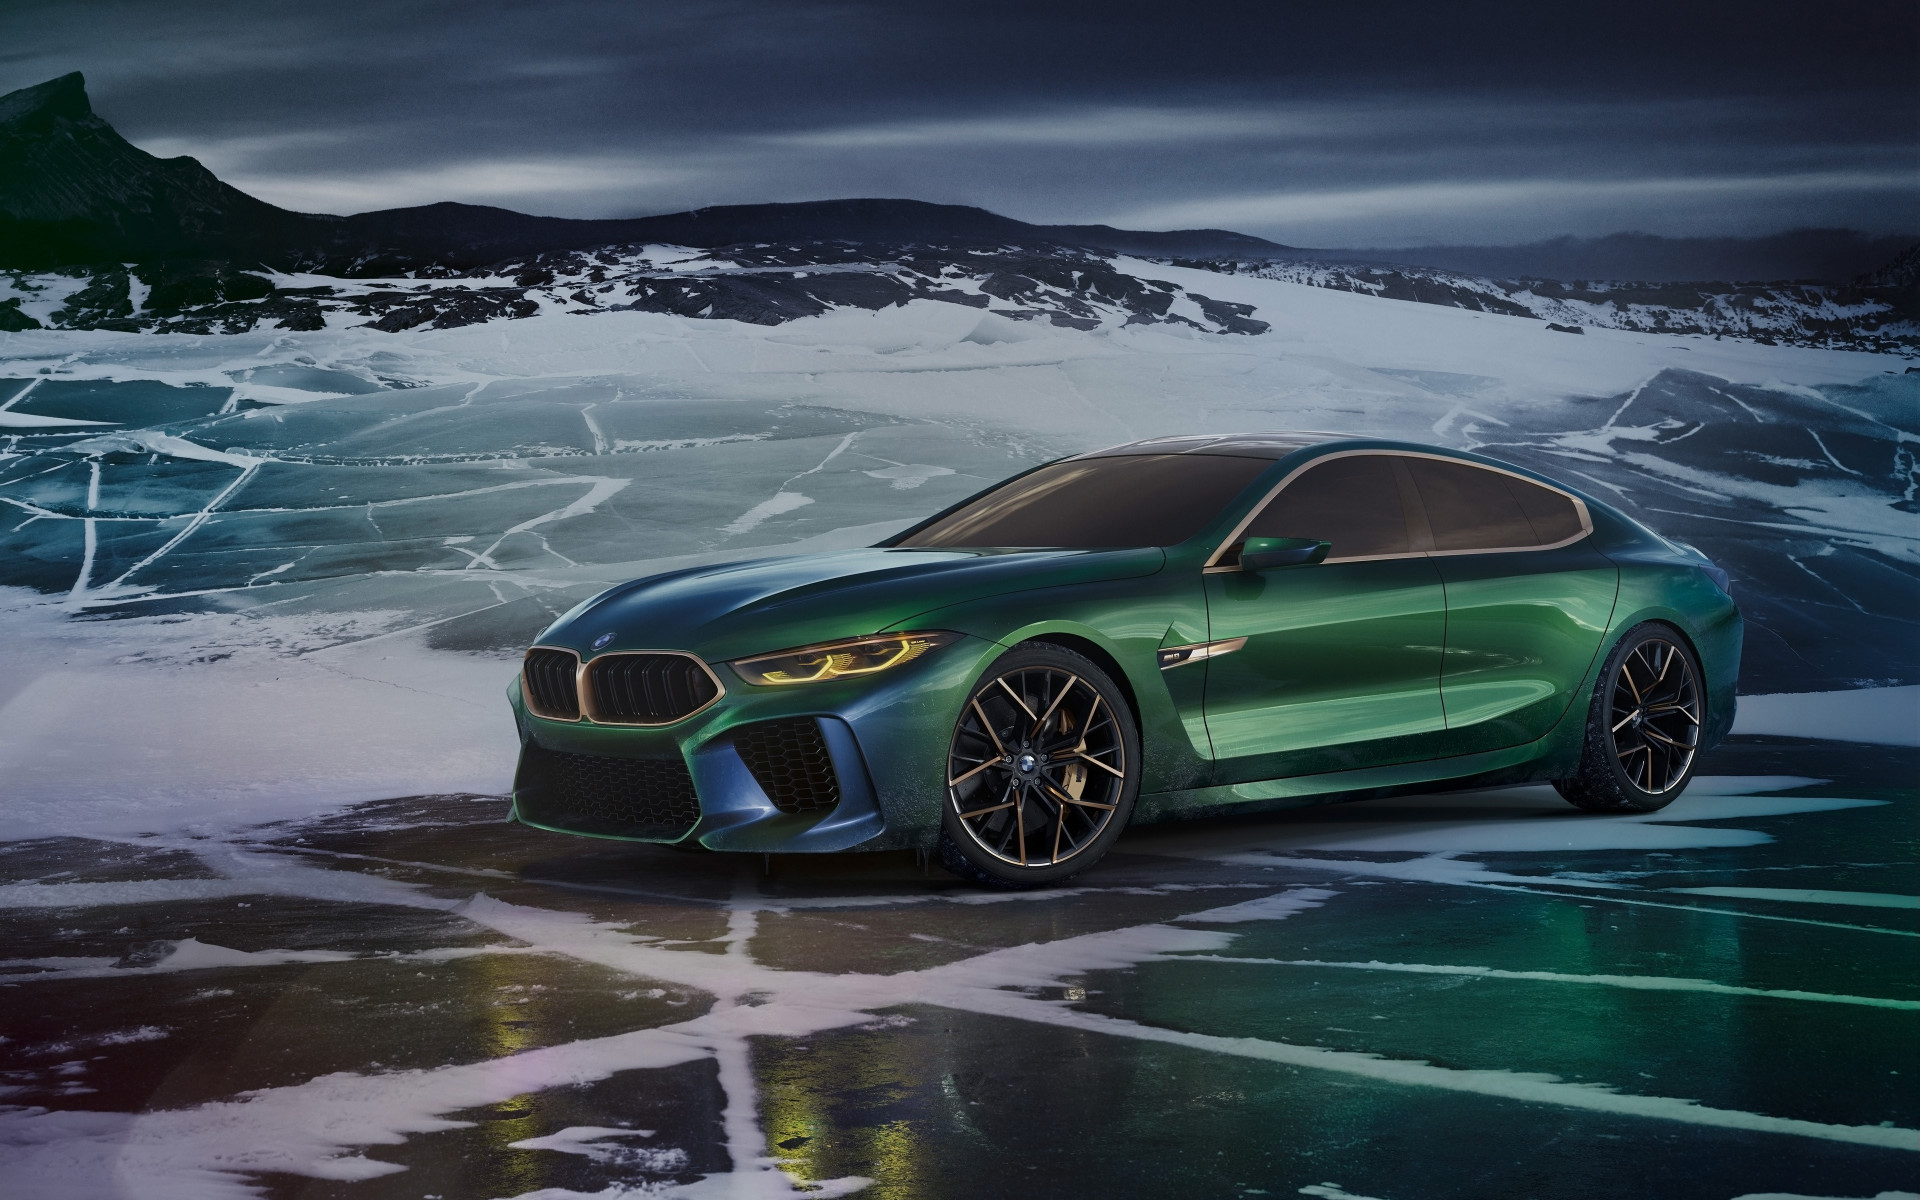 BMW Concept M8 Gran Coupe 2018 | 1920x1200 wallpaper